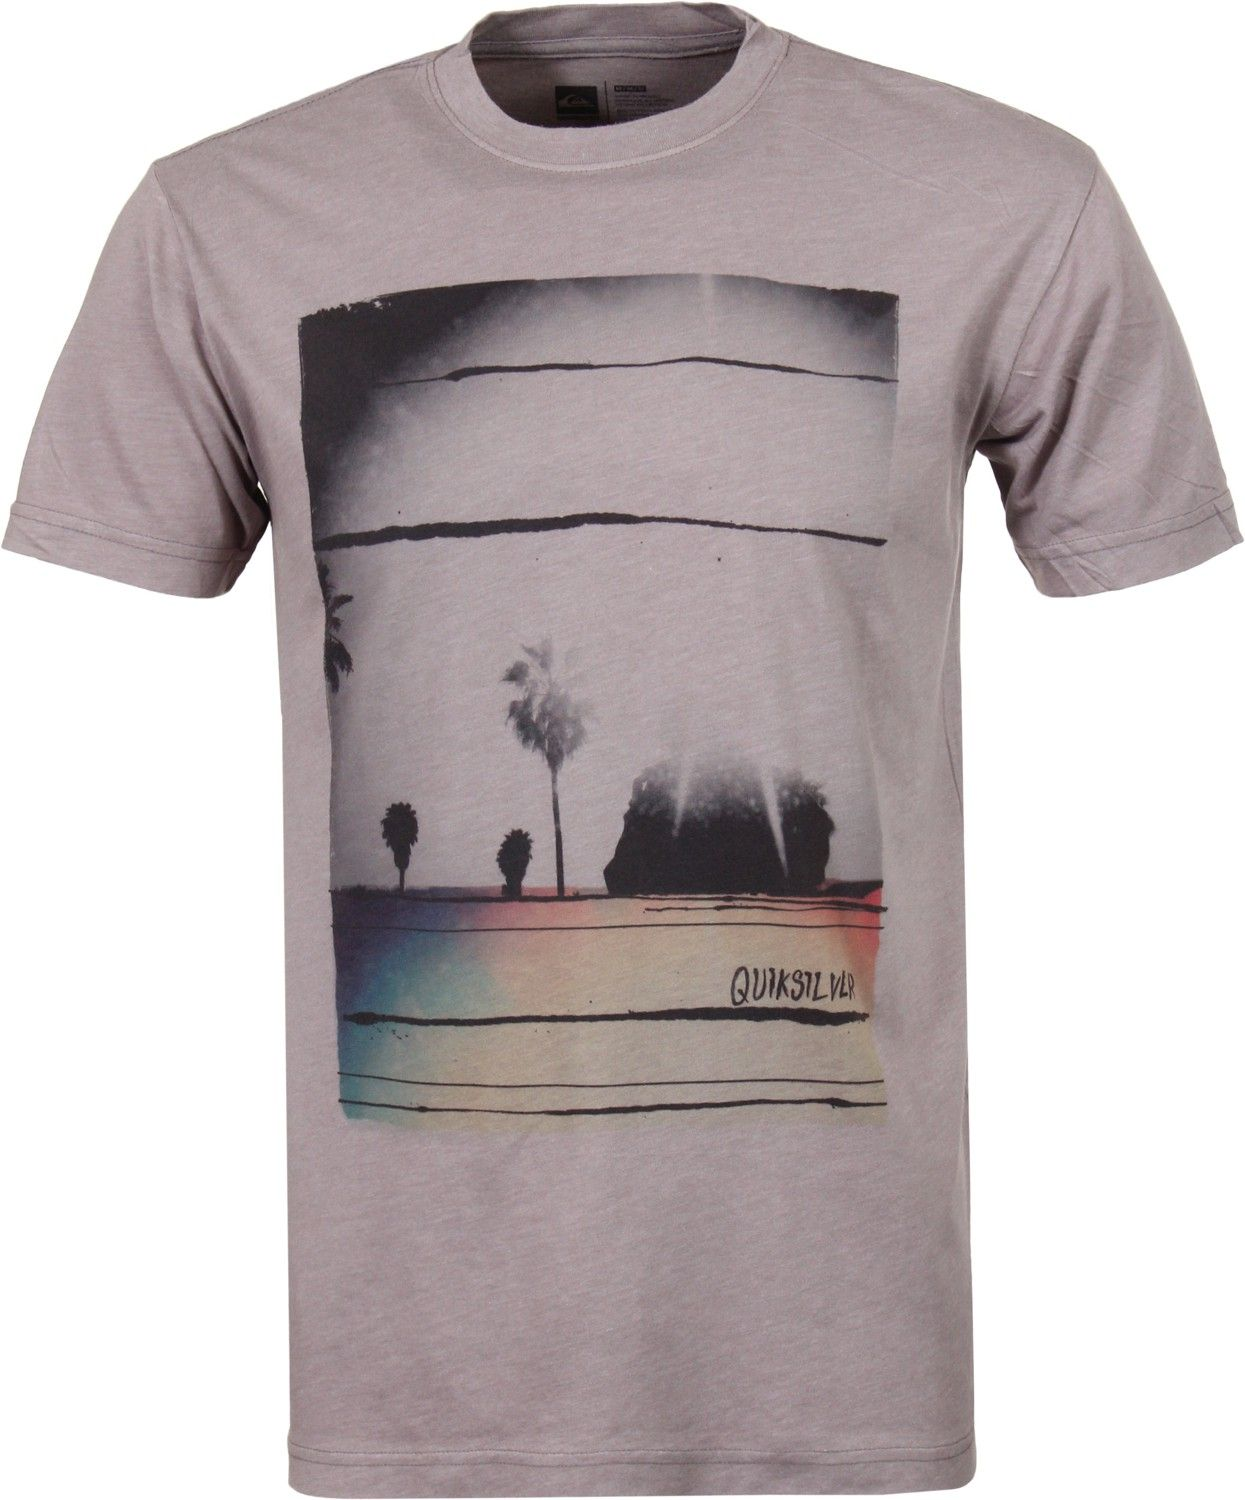 Quiksilver plain black t shirt - Quiksilver Fiction T Shirt Haze Men S Clothing Shirts T Shirts